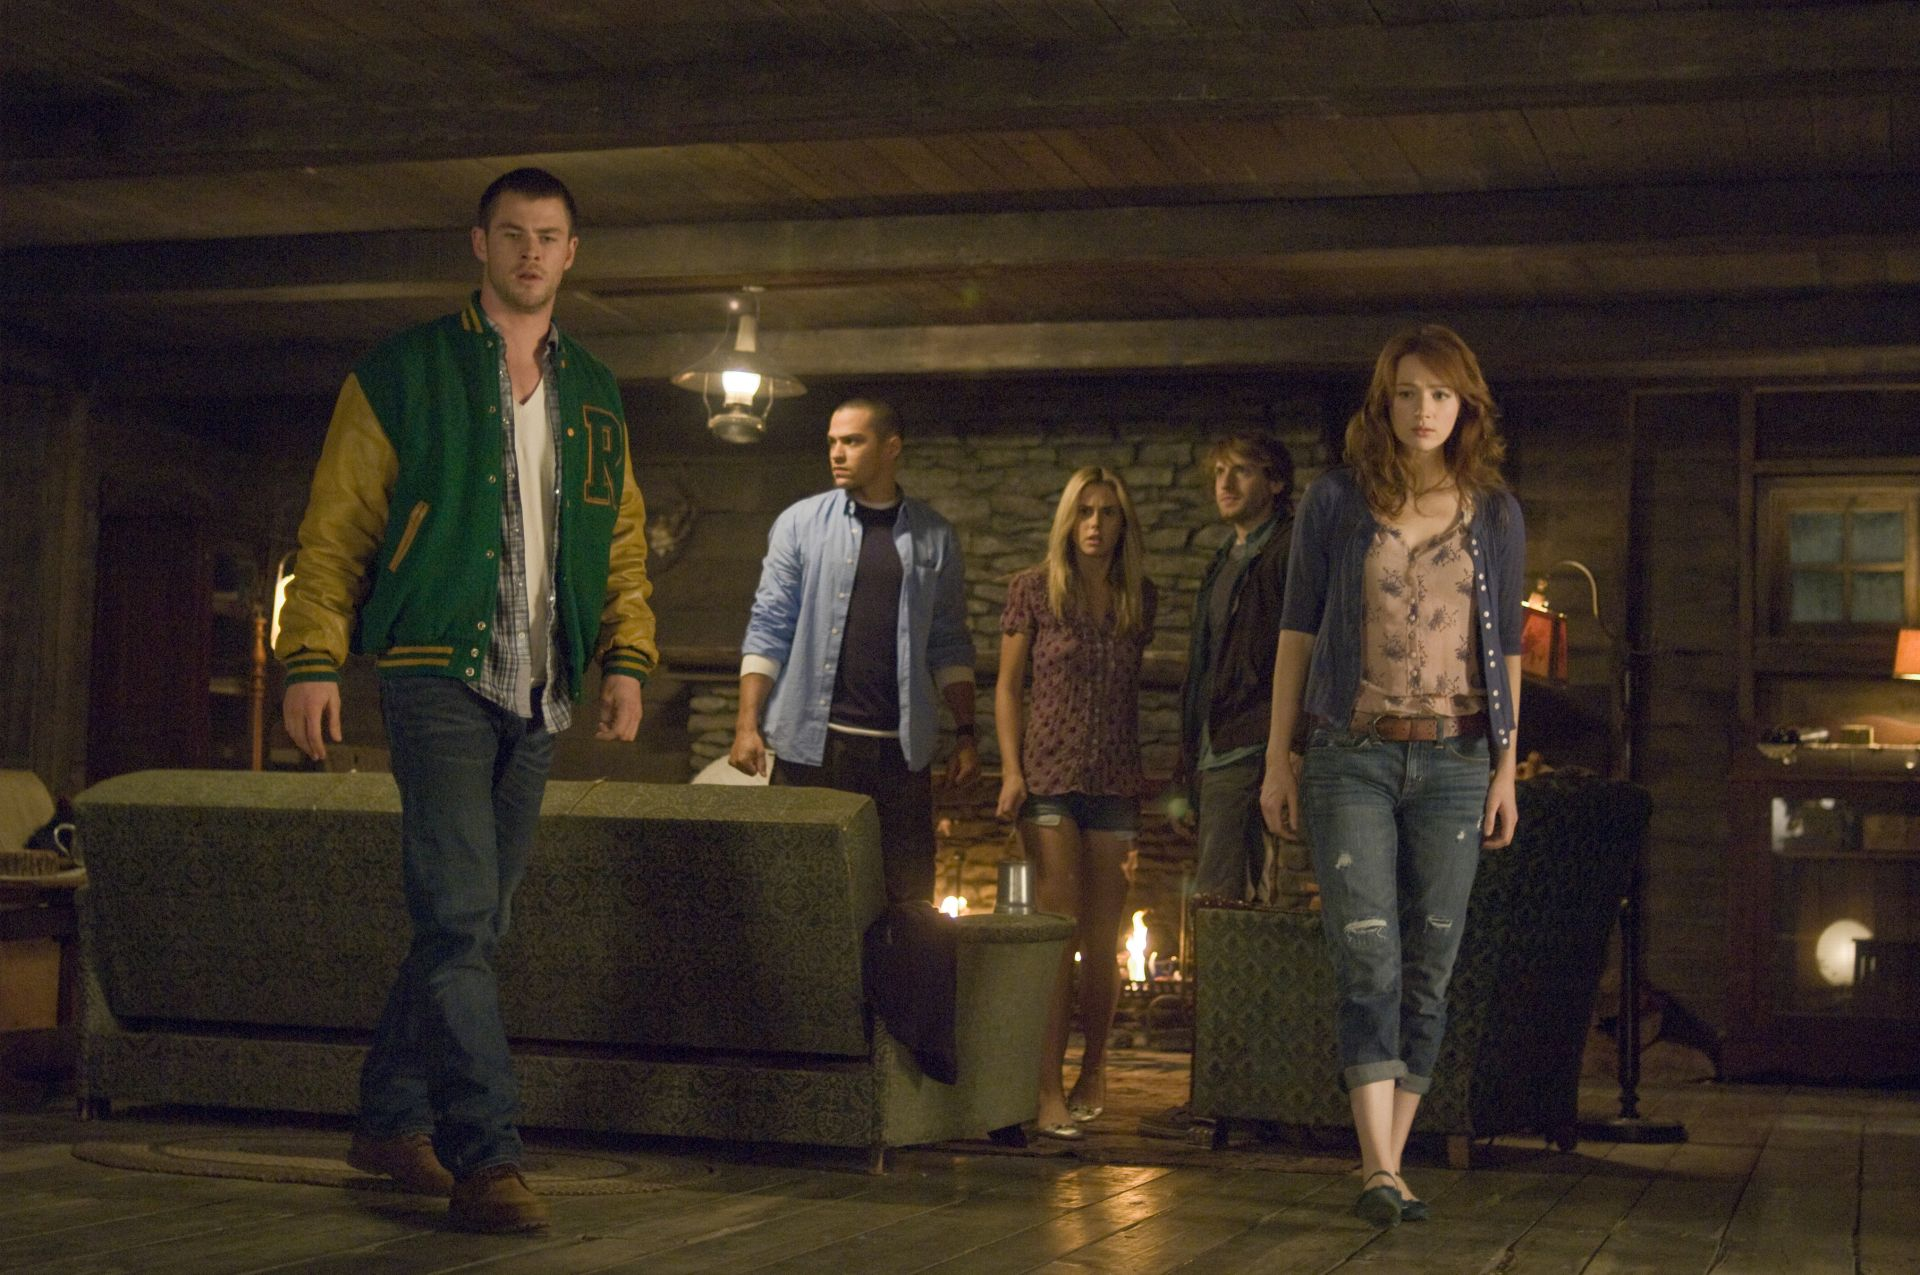 5 Big Budget Horror Films - Cabin in the Woods